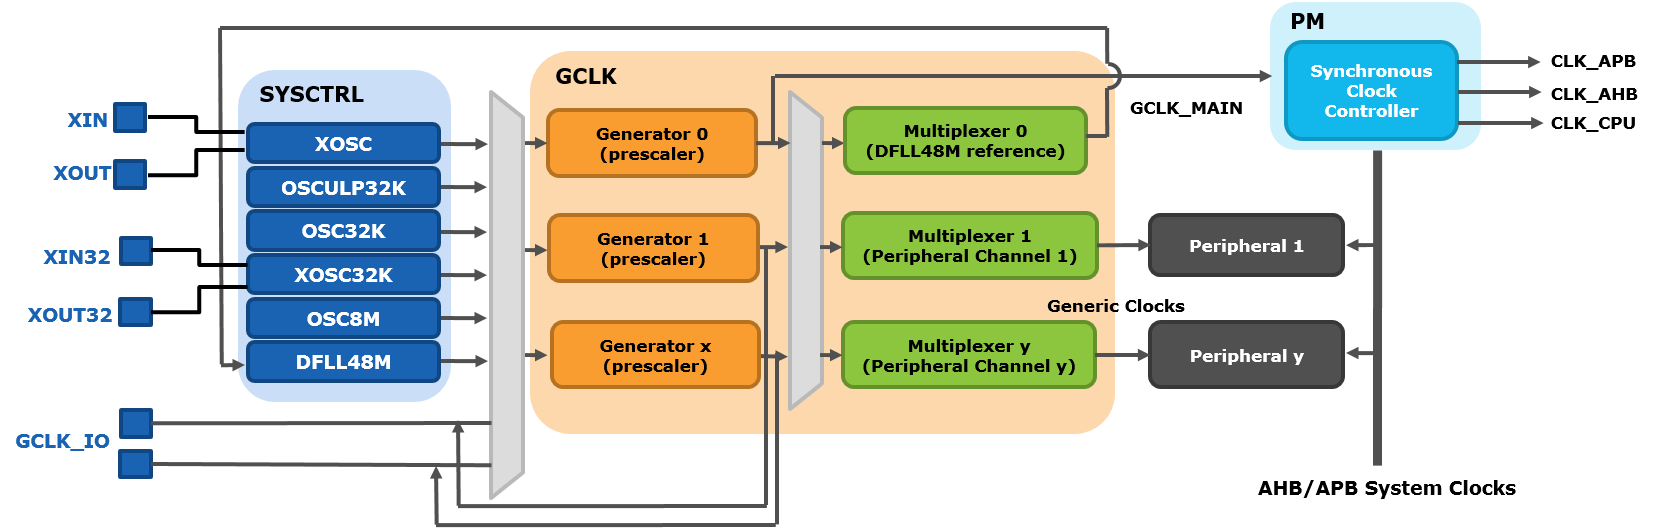 samd21-clock-system-block-diagram-detail.png